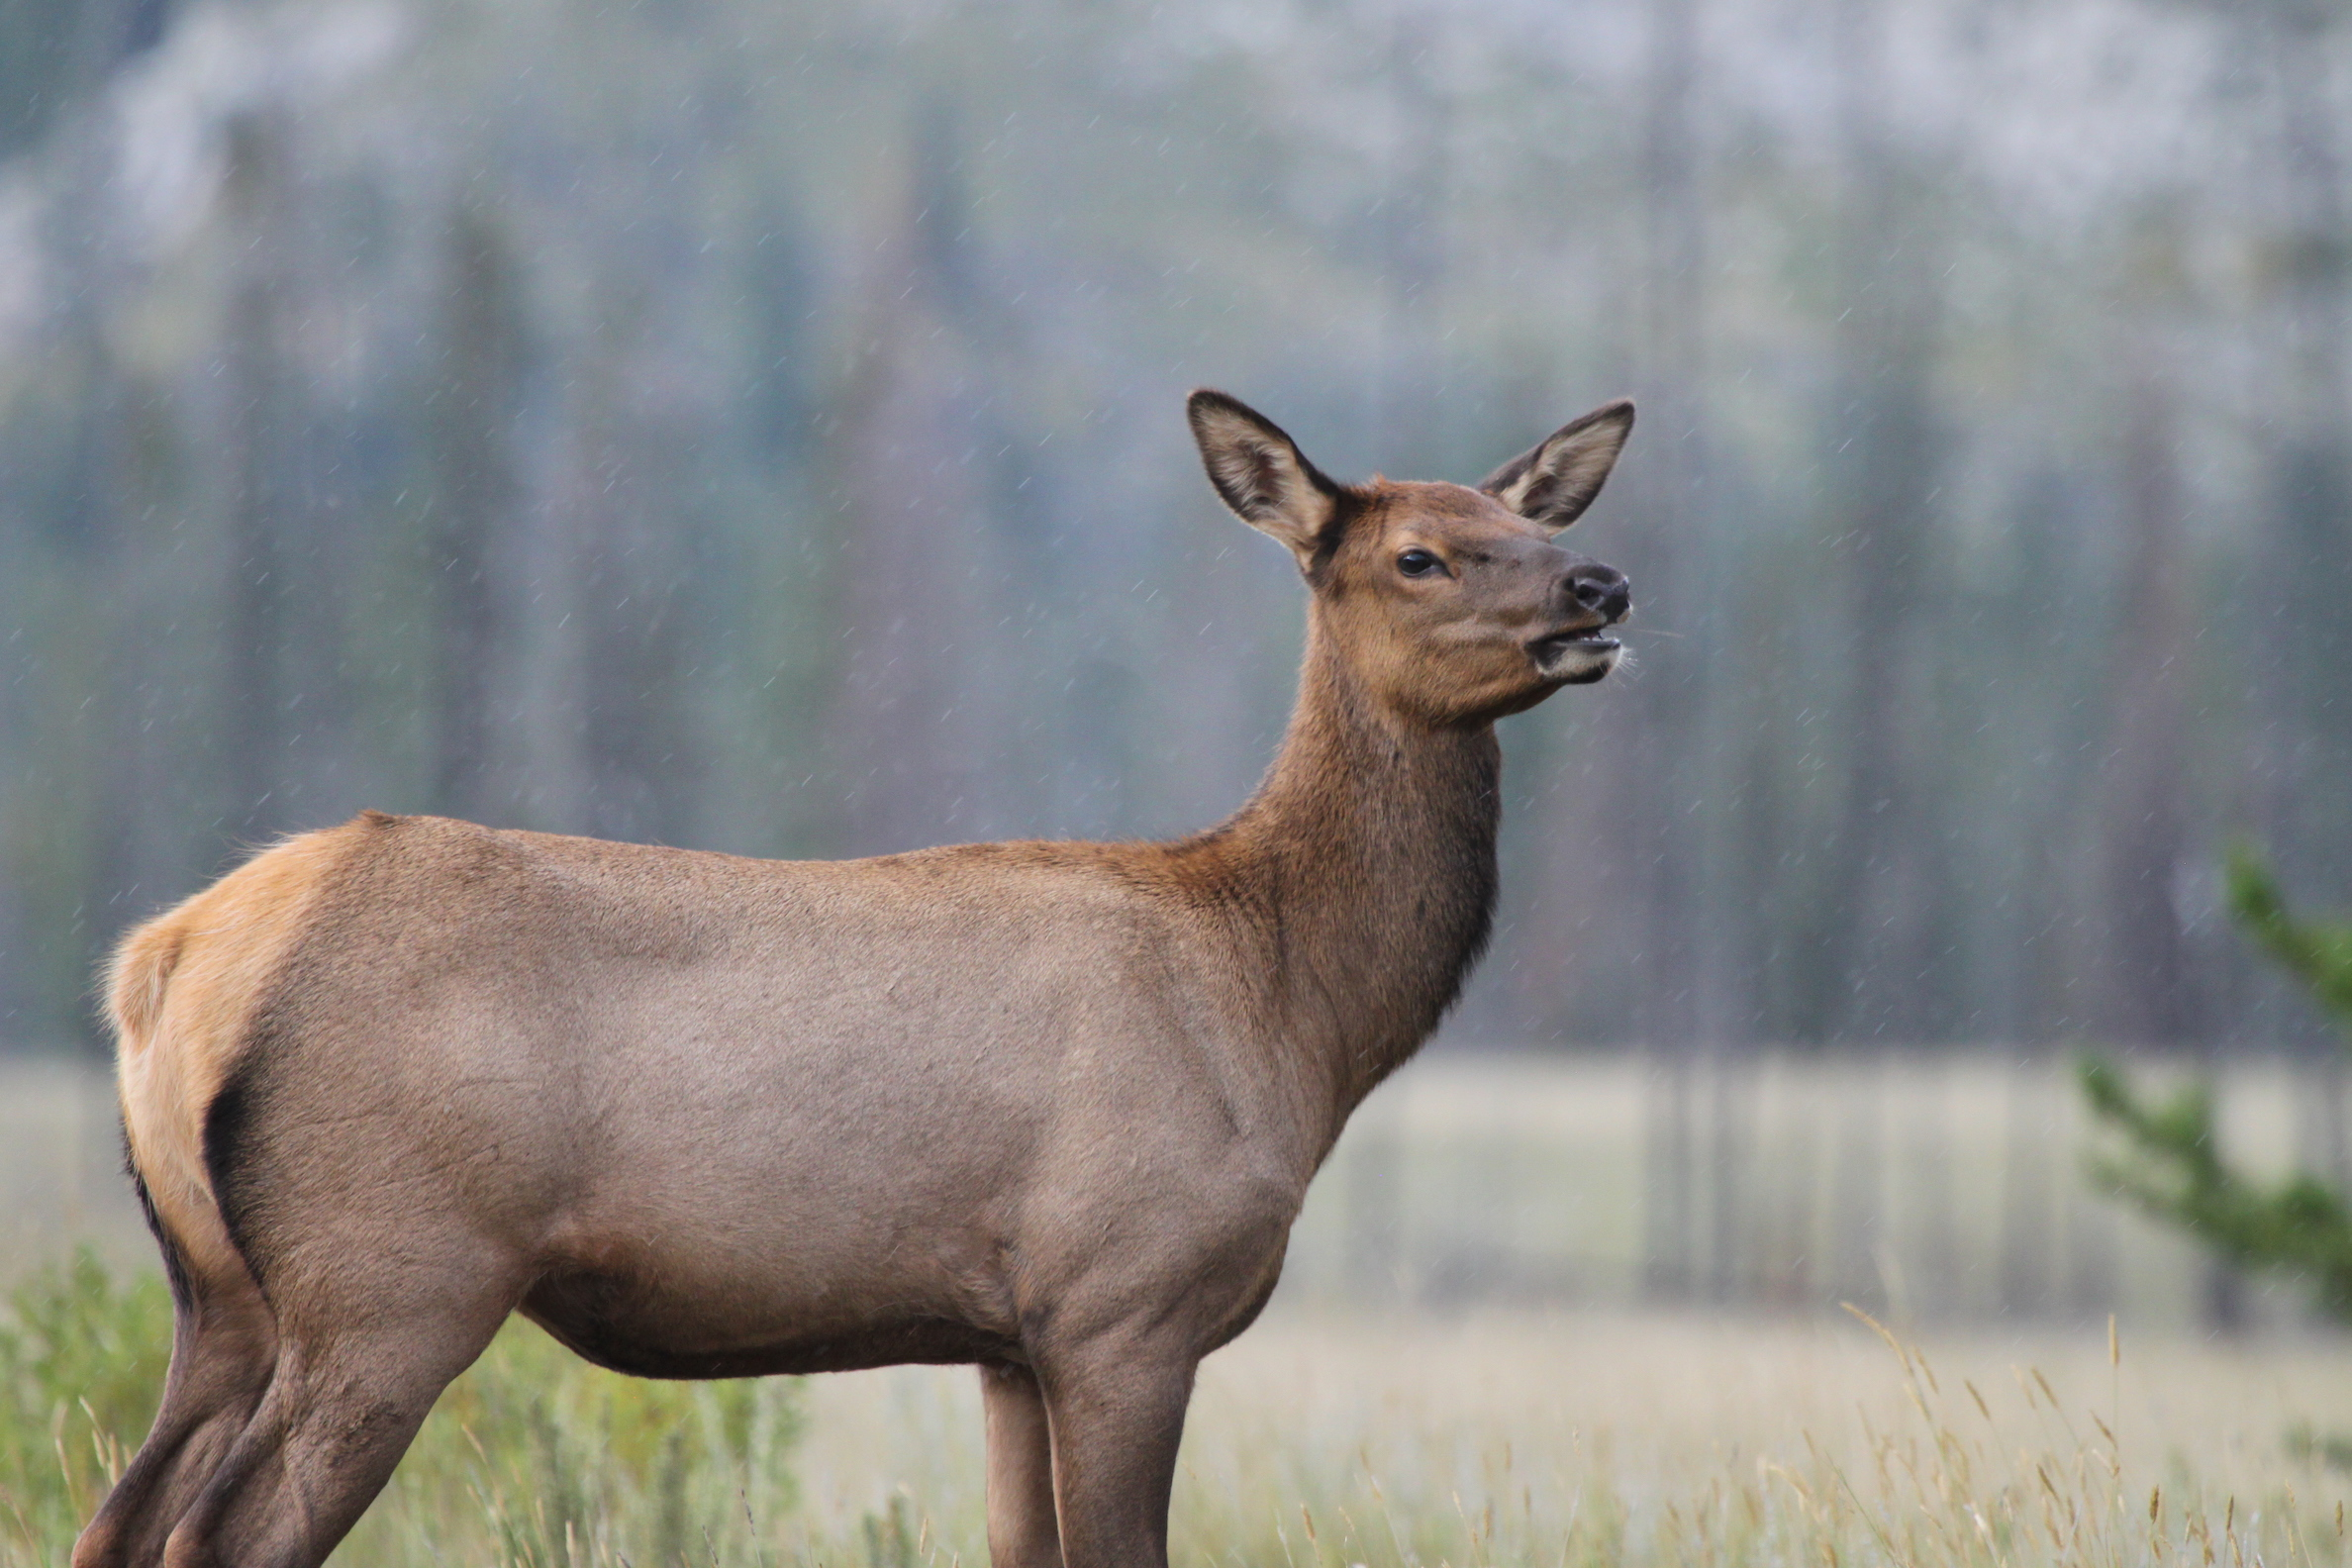 As female elk get older, they also get wiser about avoiding hunters, according to a new study from the University of Alberta.